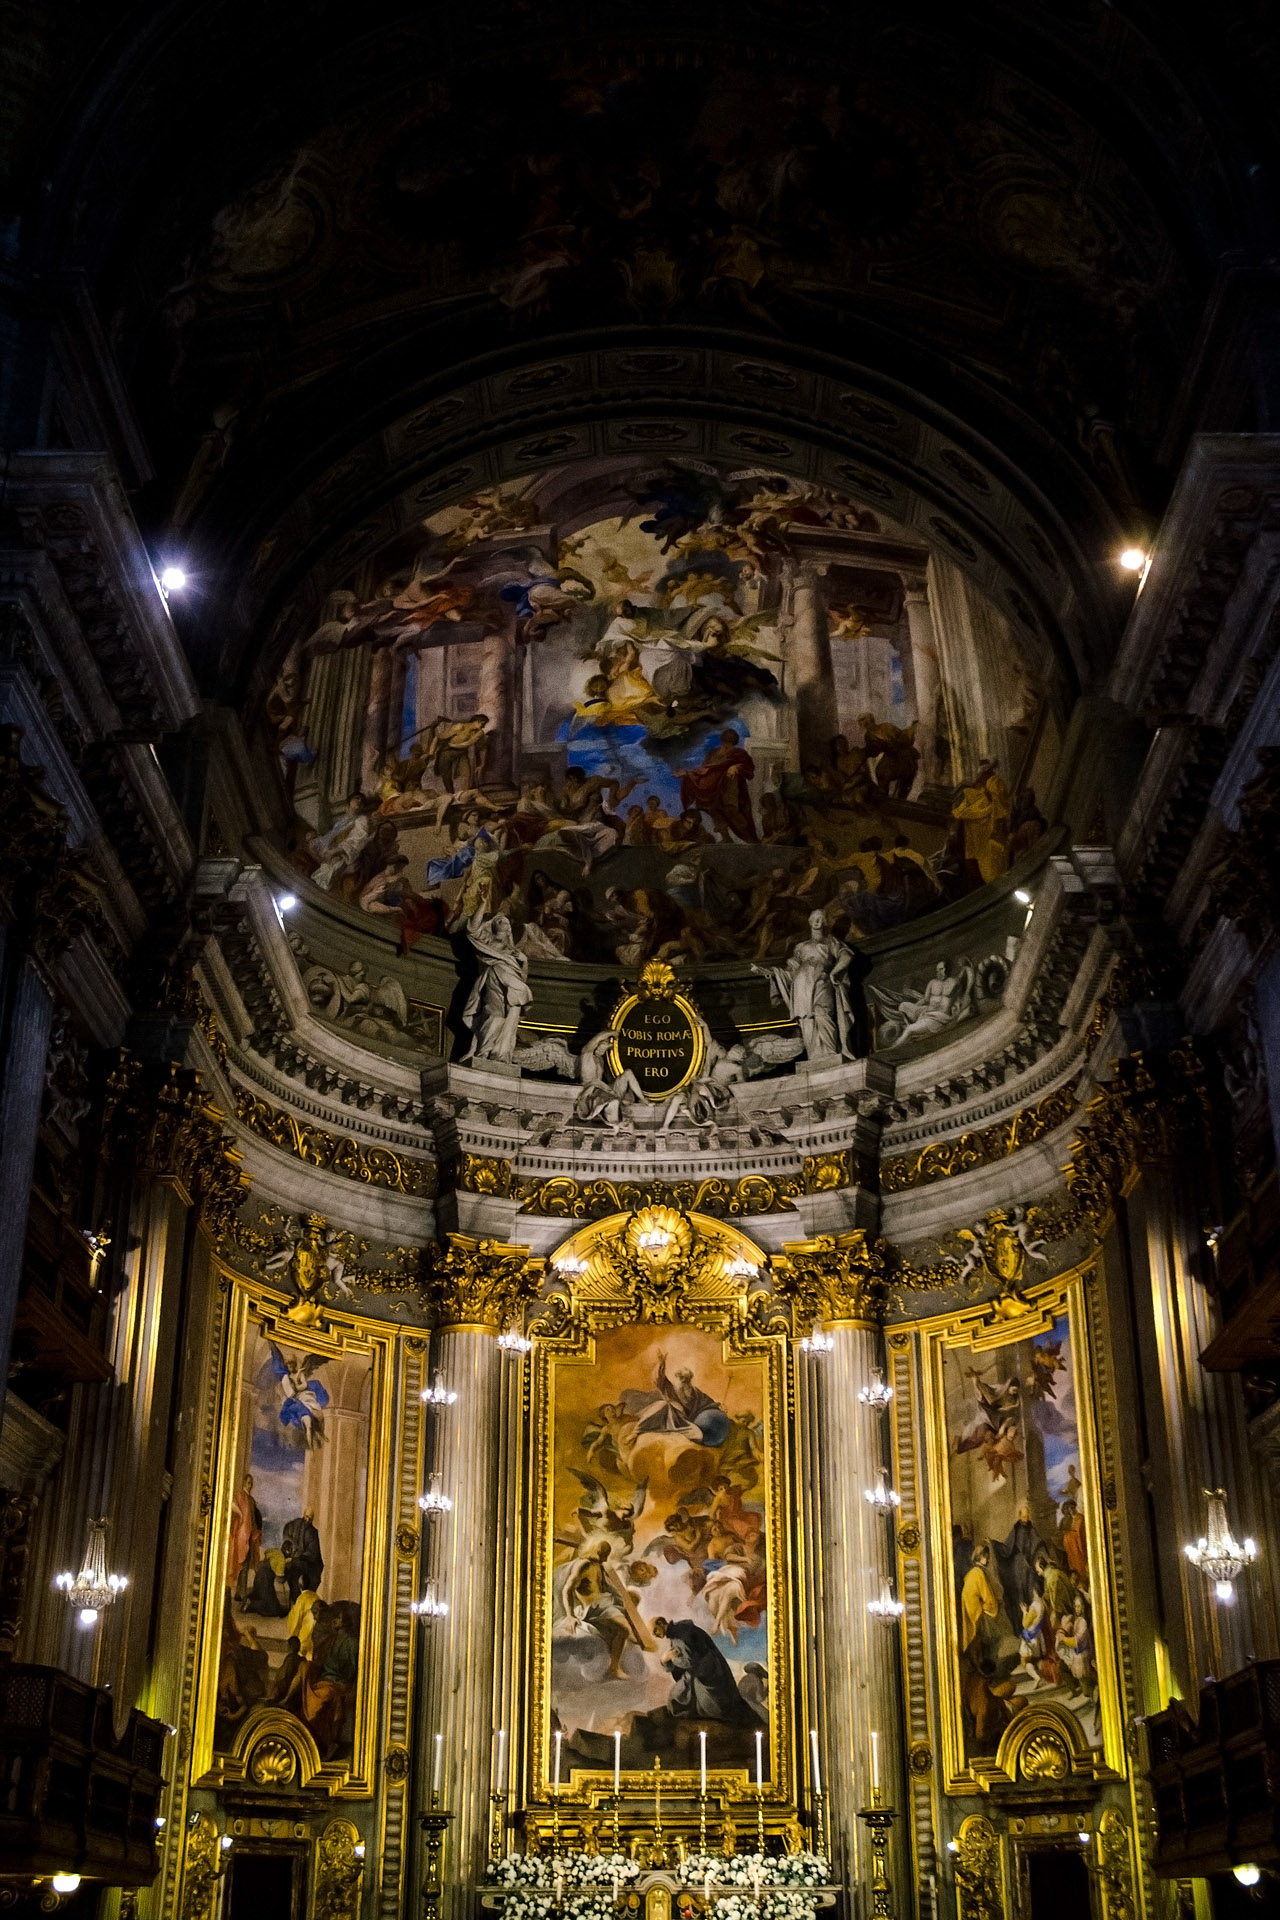 Church of Saint Ignatius (interior)